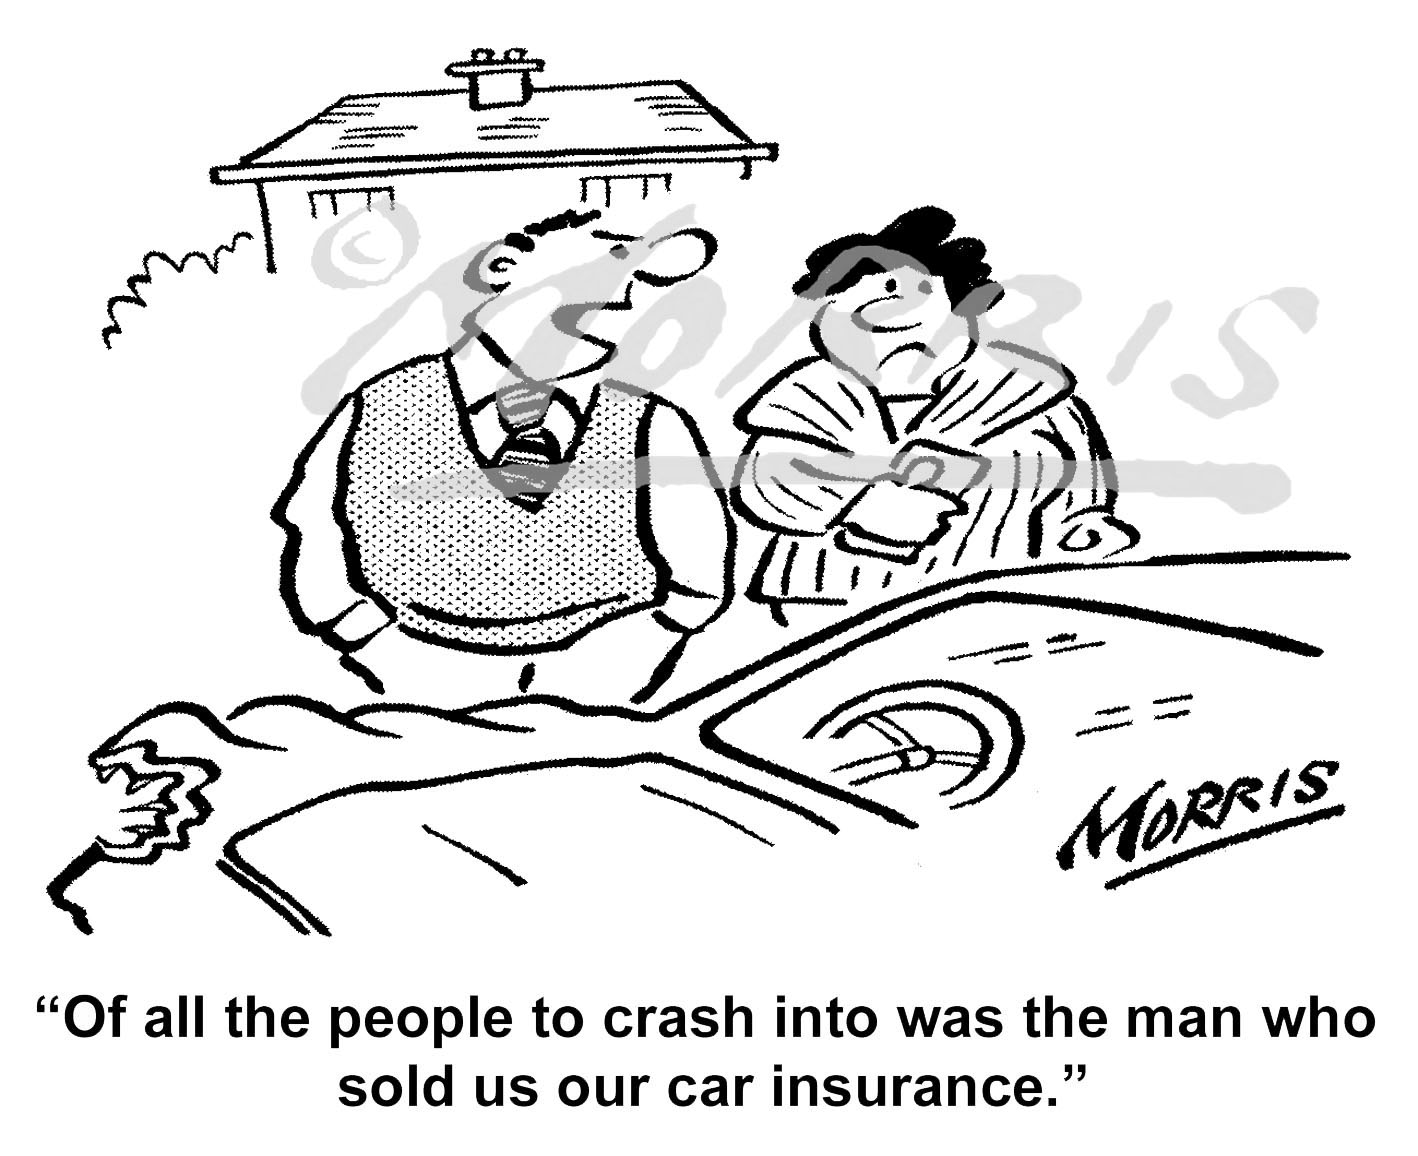 Car insurance business cartoon – Ref: 8112bw